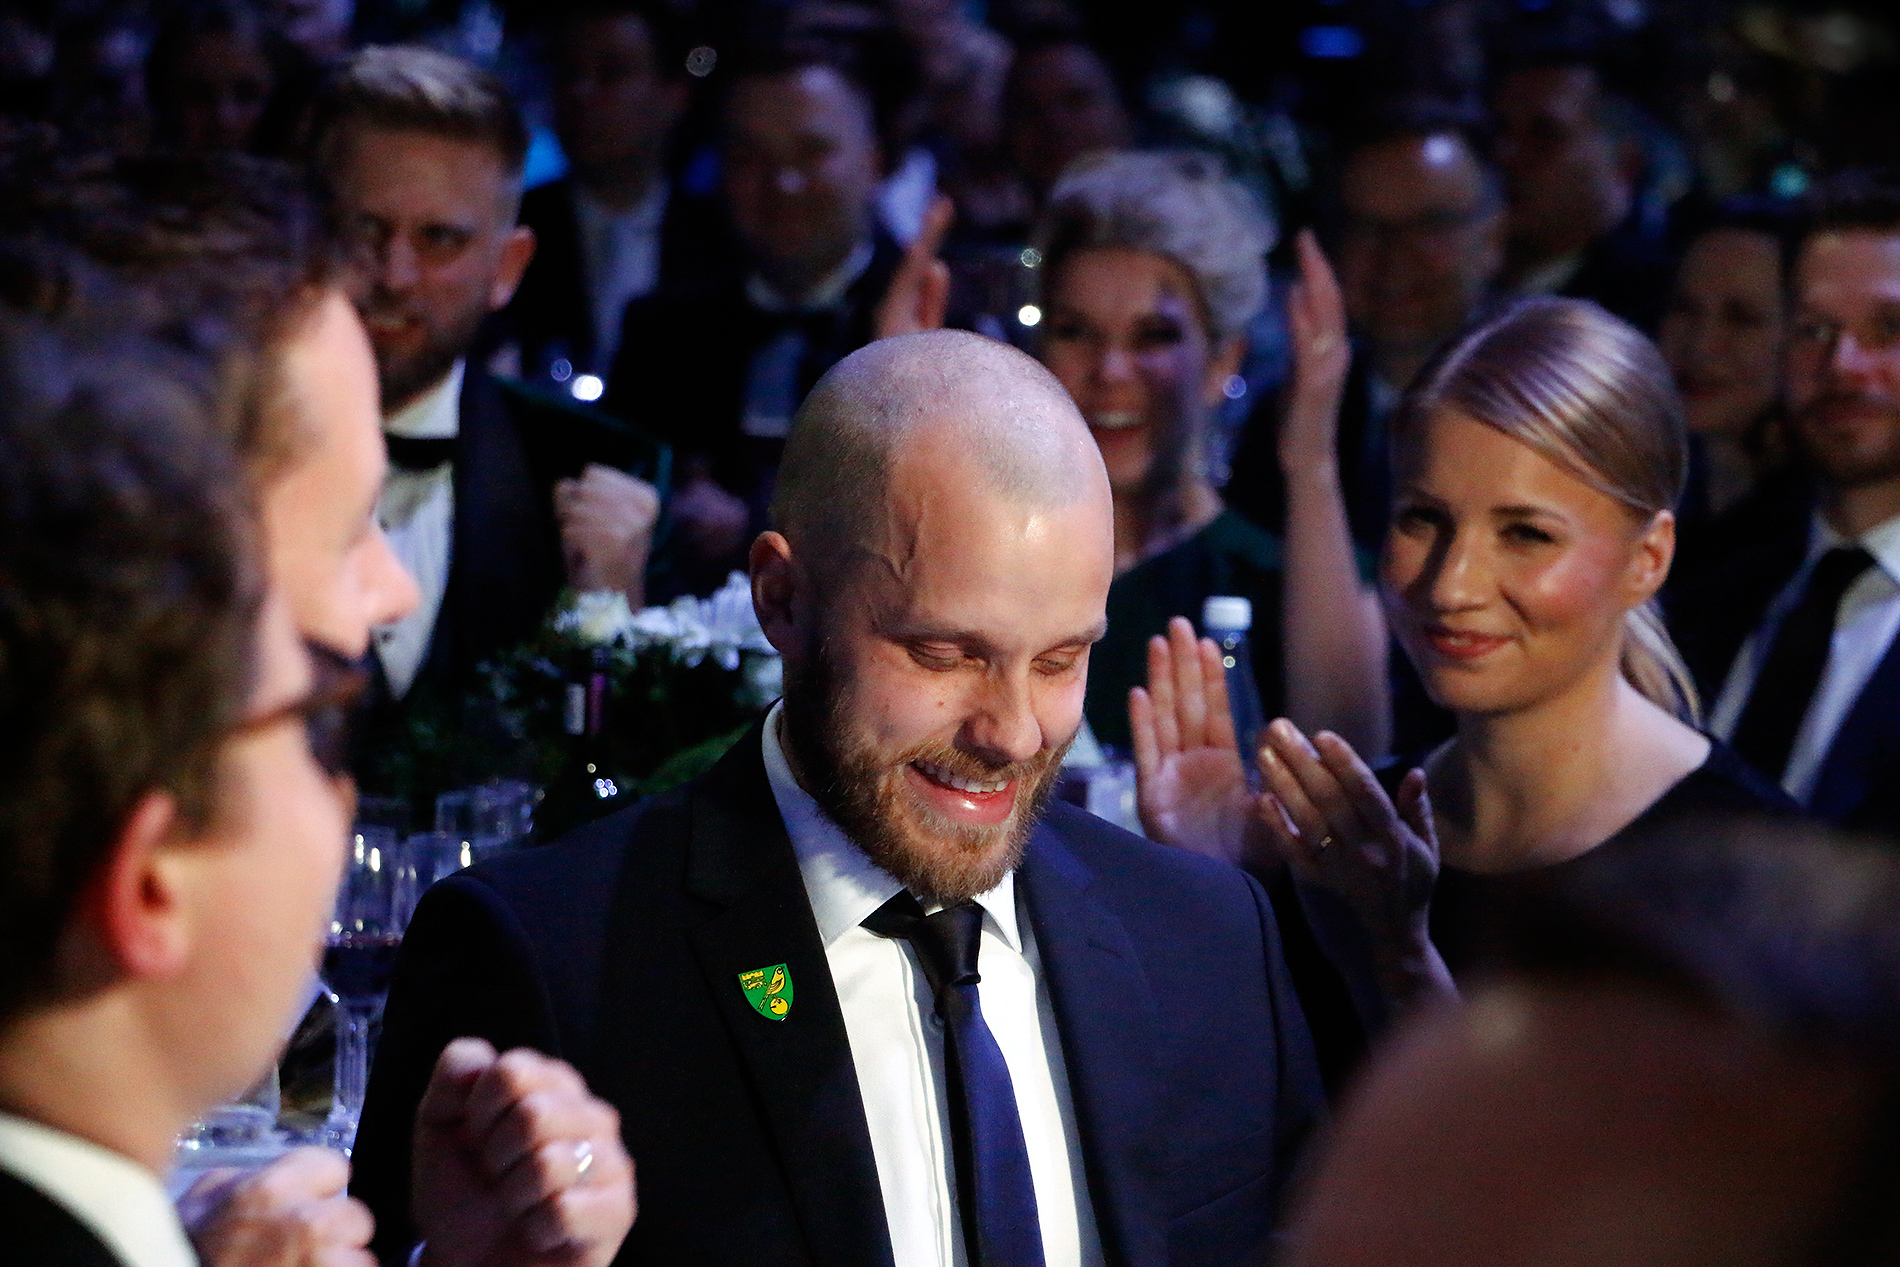 Football striker Teemu Pukki won the Athlete of the Year prize. Picture: Tony Öhberg for Finland Today